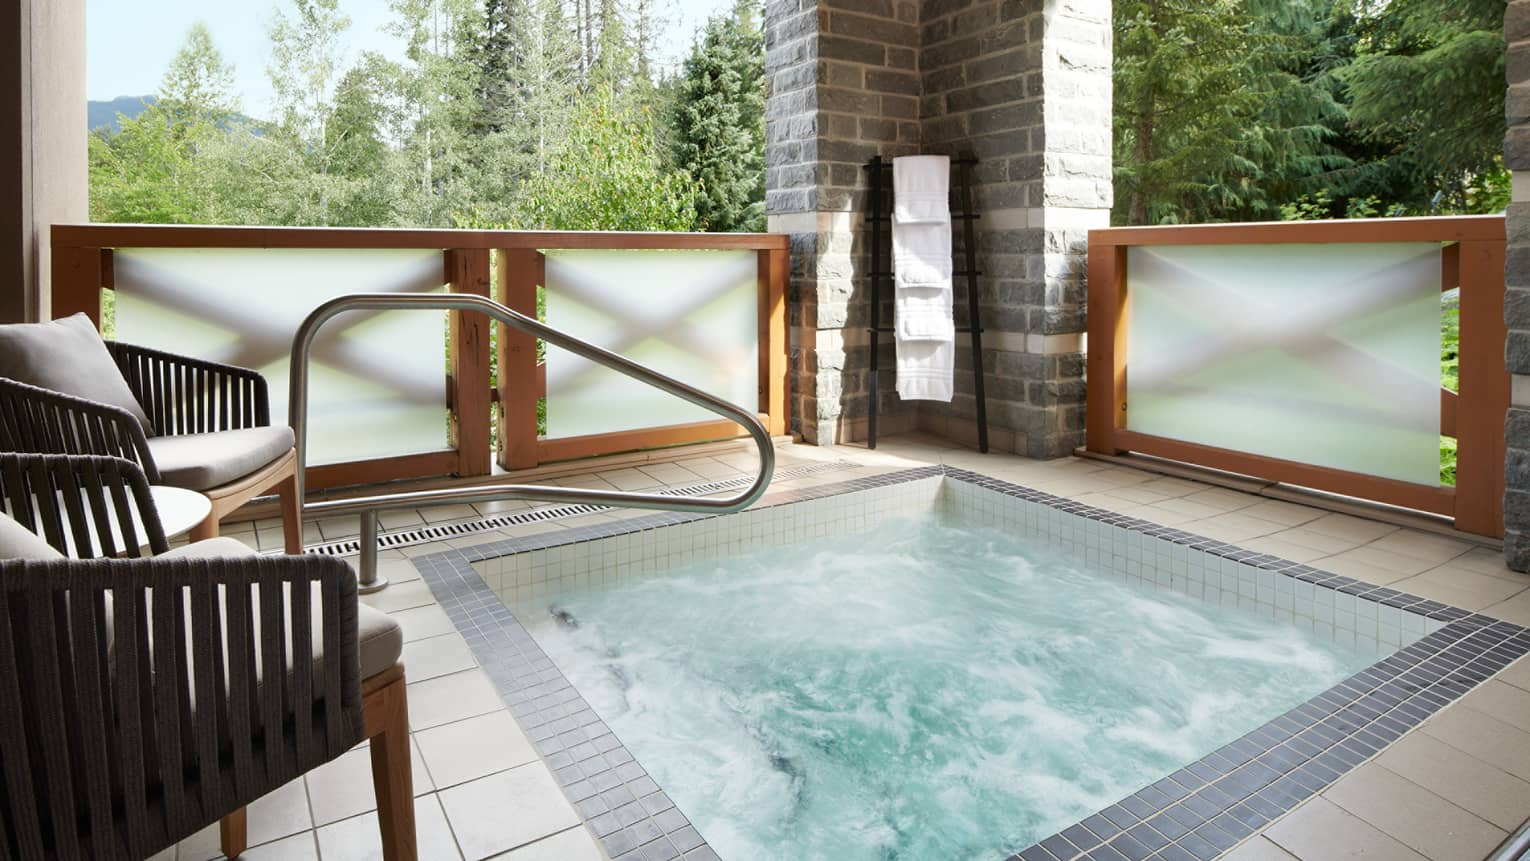 Outdoor hot tub on private terrace